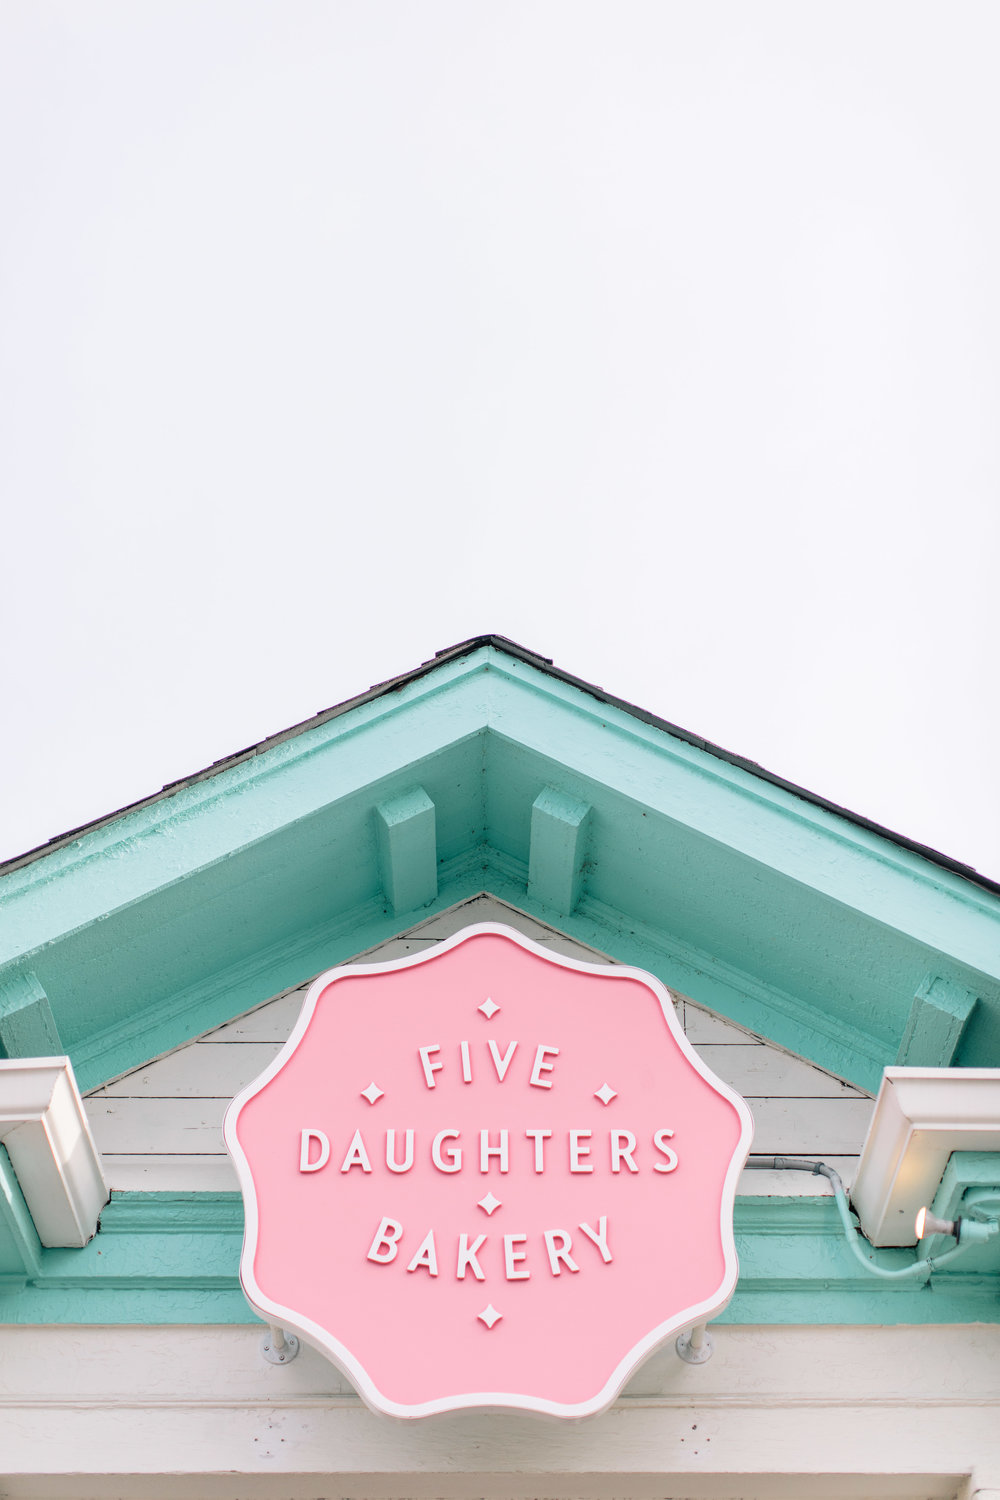 fivedaughters-1.JPG